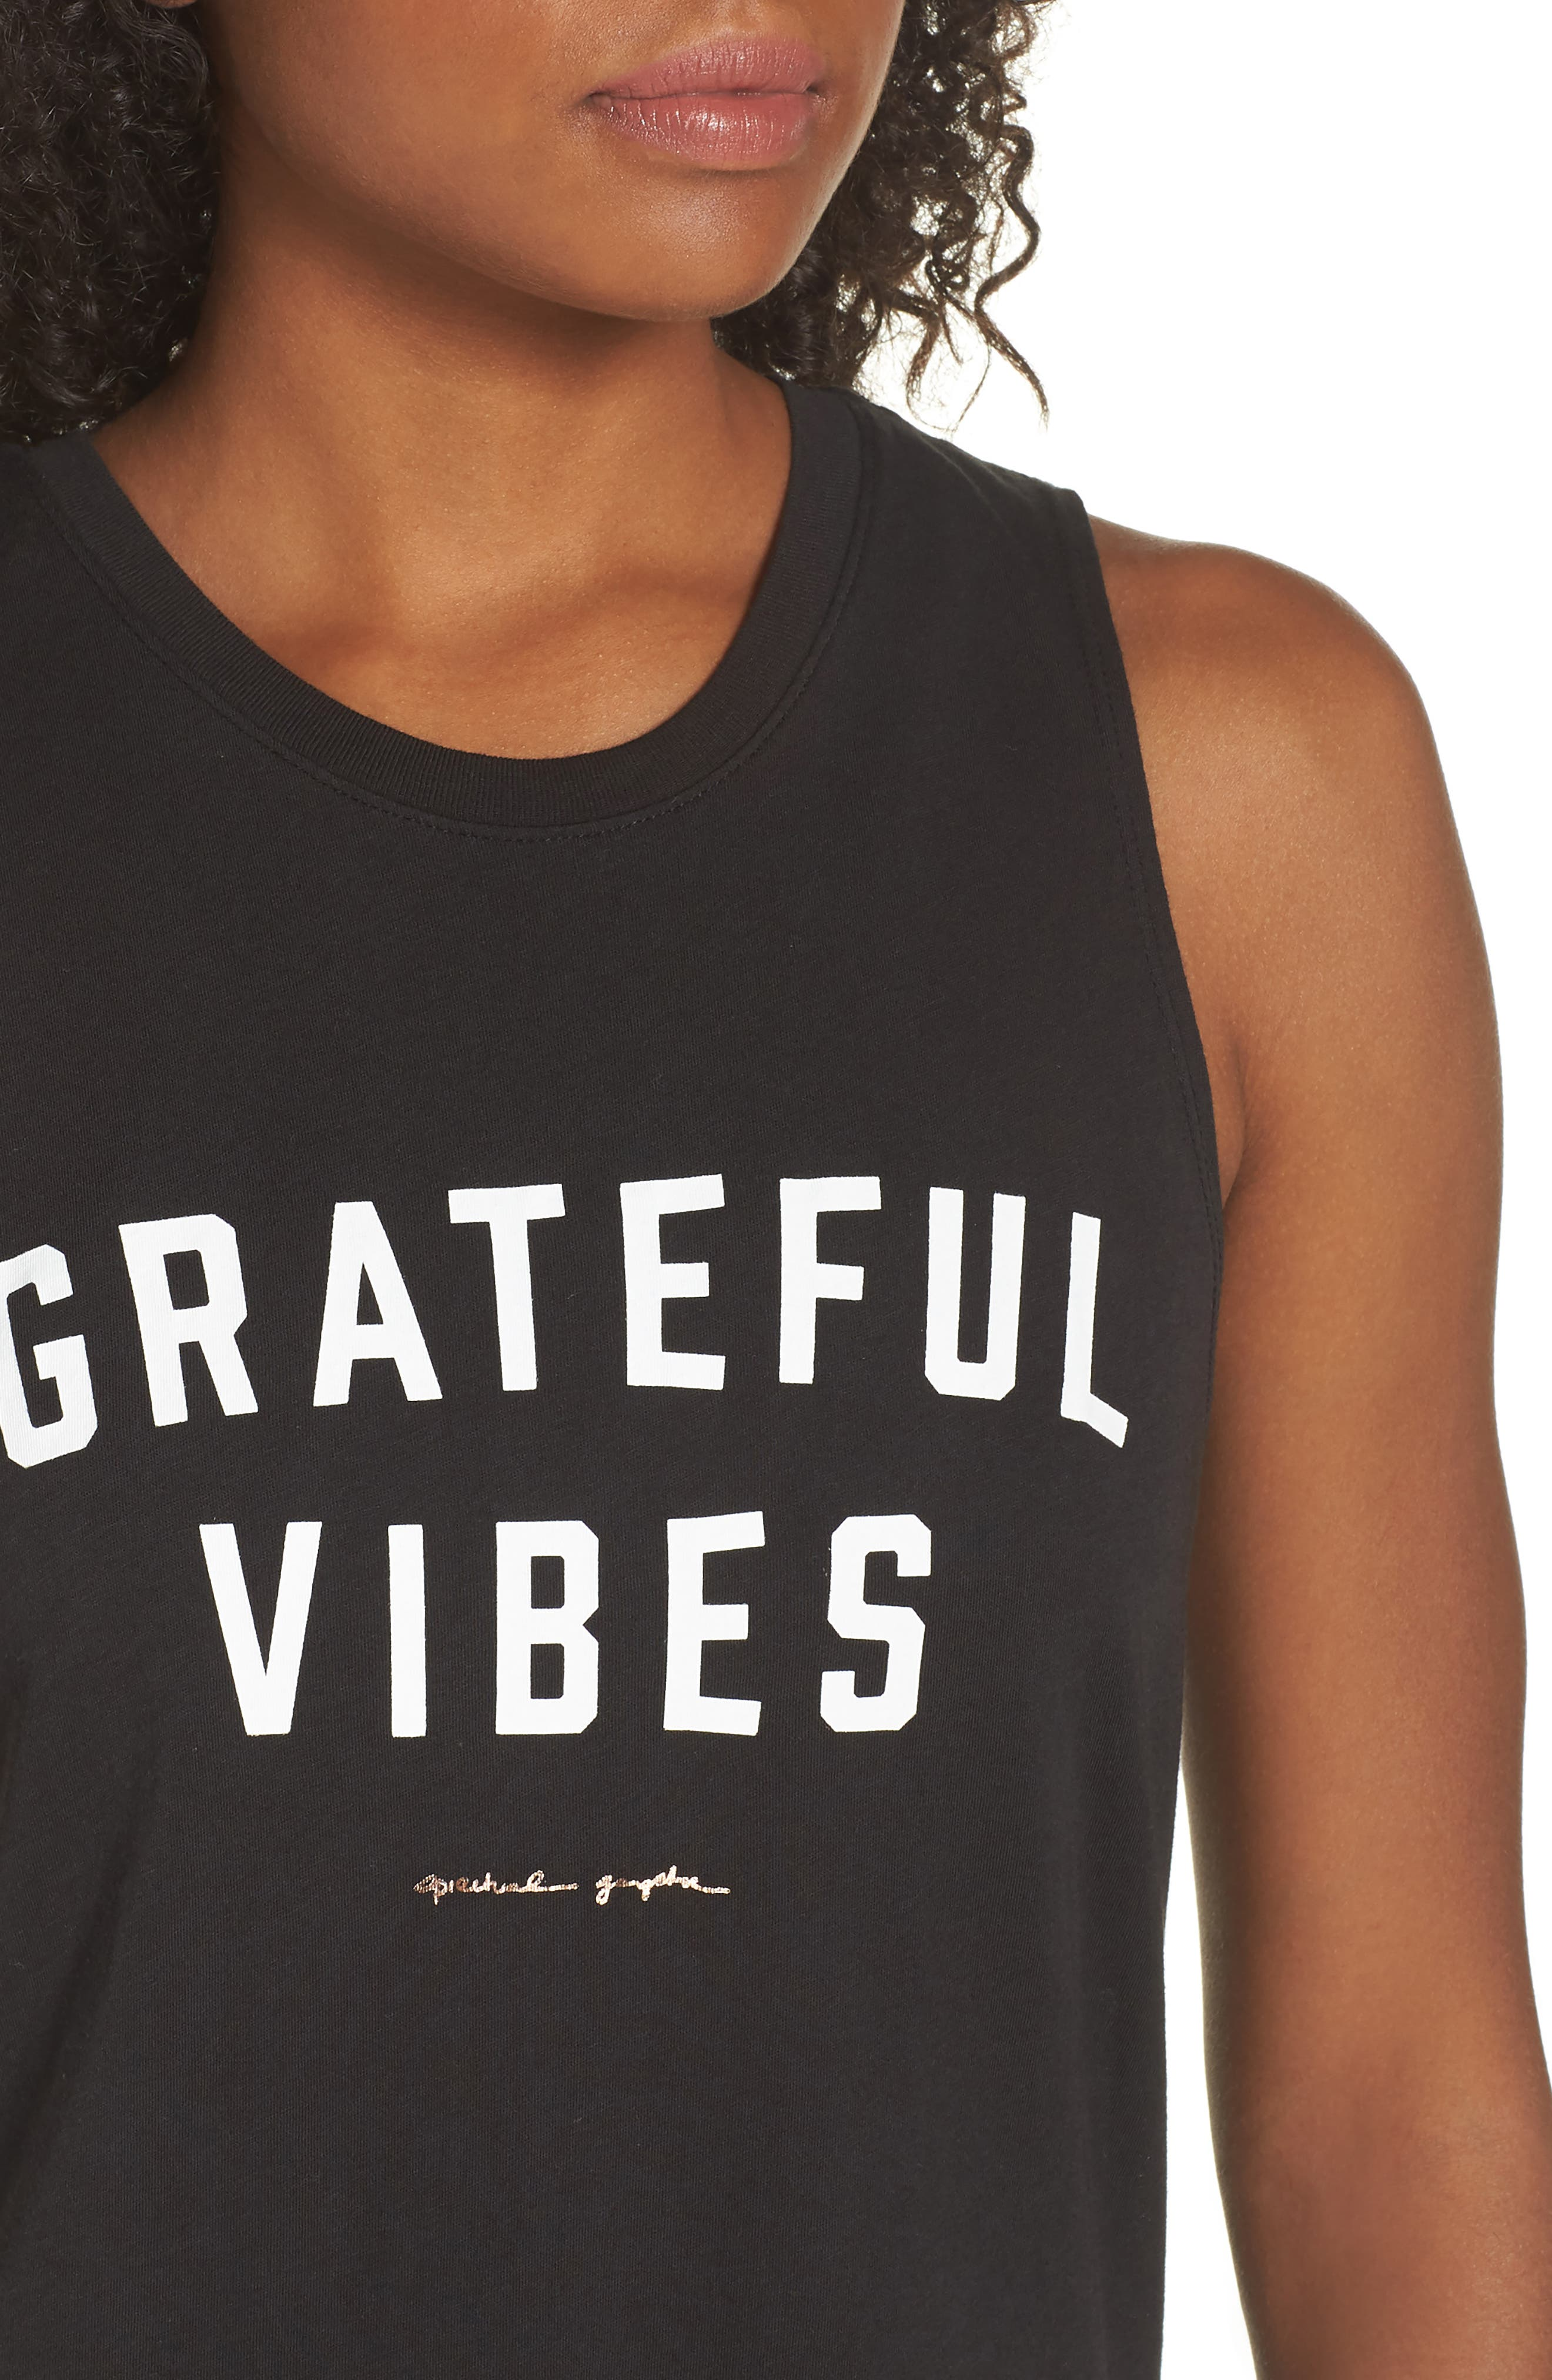 Grateful Vibes Muscle Tee,                             Alternate thumbnail 4, color,                             003